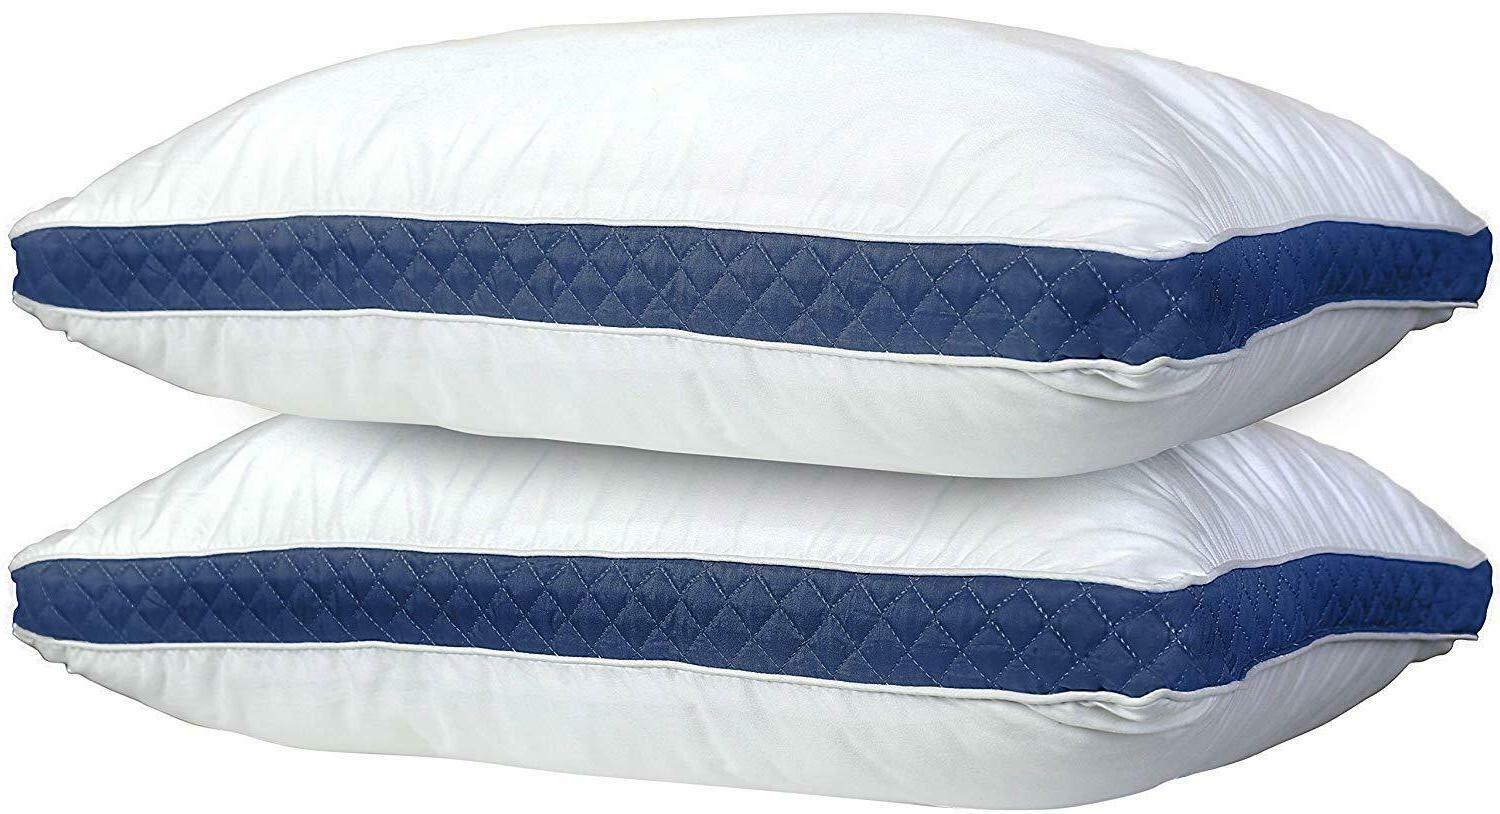 hypoallergenic quilted 2pack queen king neck support